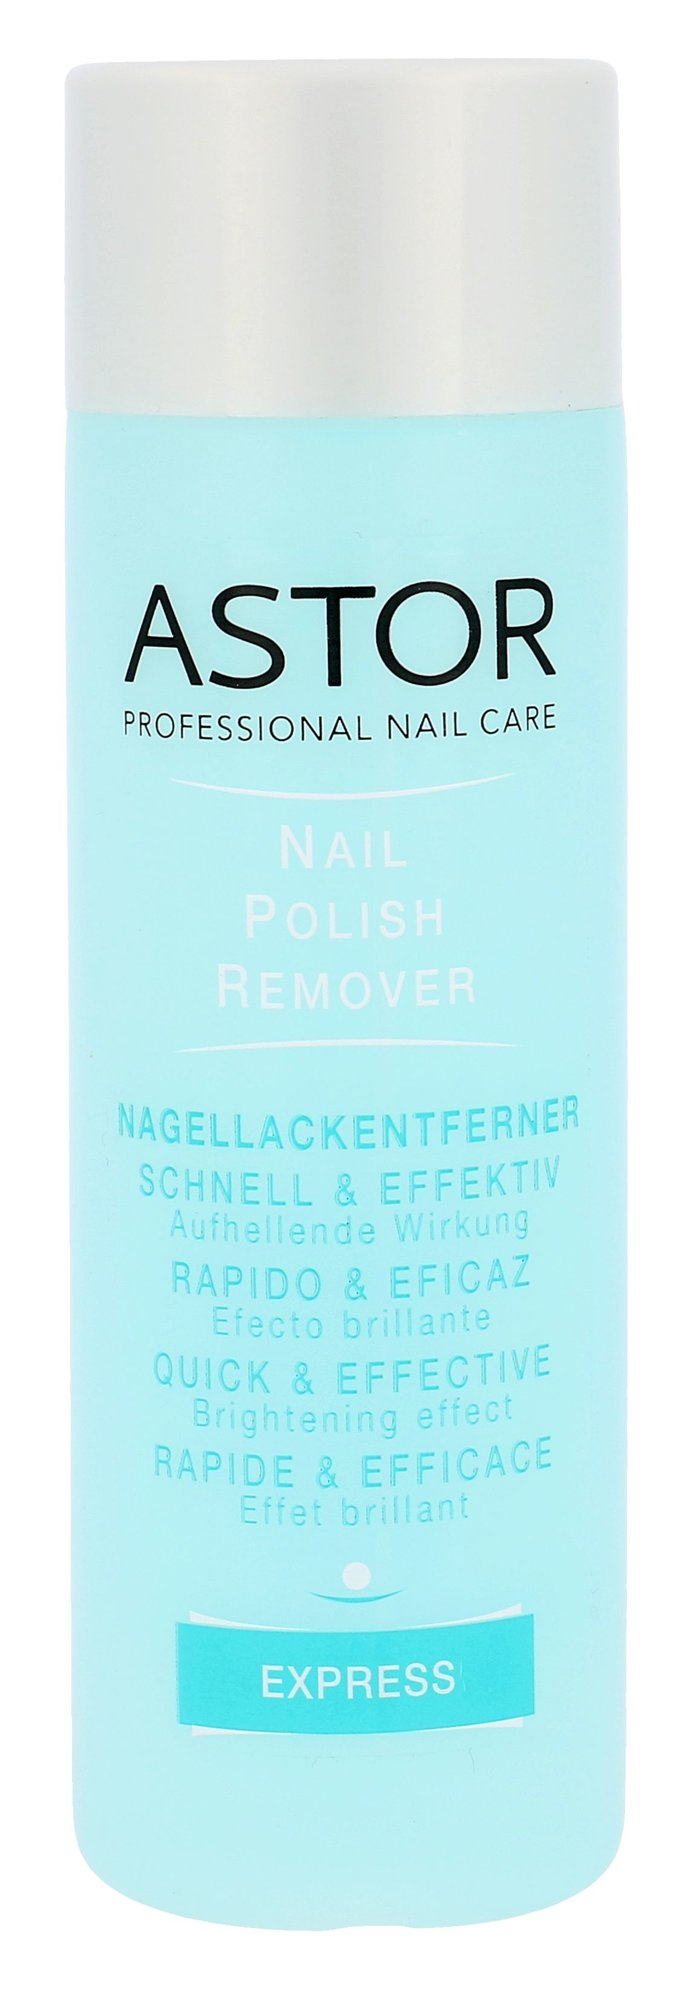 ASTOR Nail Polish Remover Cosmetic 100ml